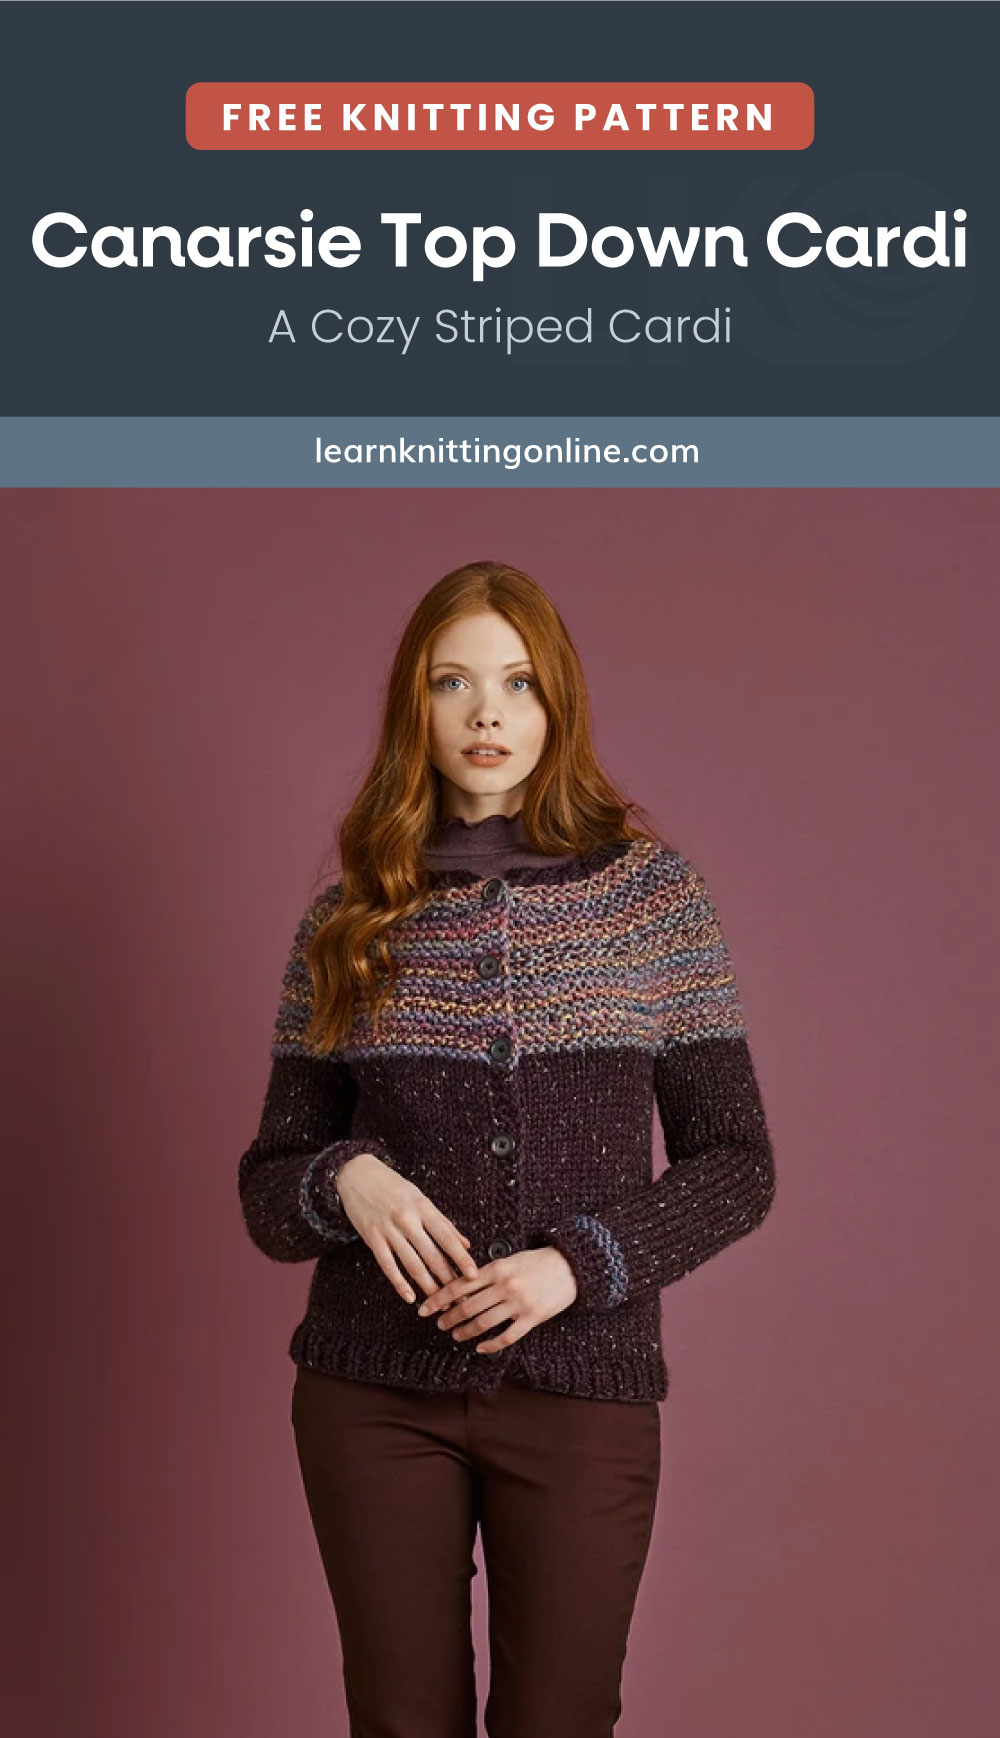 """Text area which says """"Free Knitting Pattern: Canarsie Top Down Cardi - A Cozy Striped Cardi, learnknittingonline.com"""" followed by a redhead wearing a buttoned knitted cardigan with a colorful top part"""